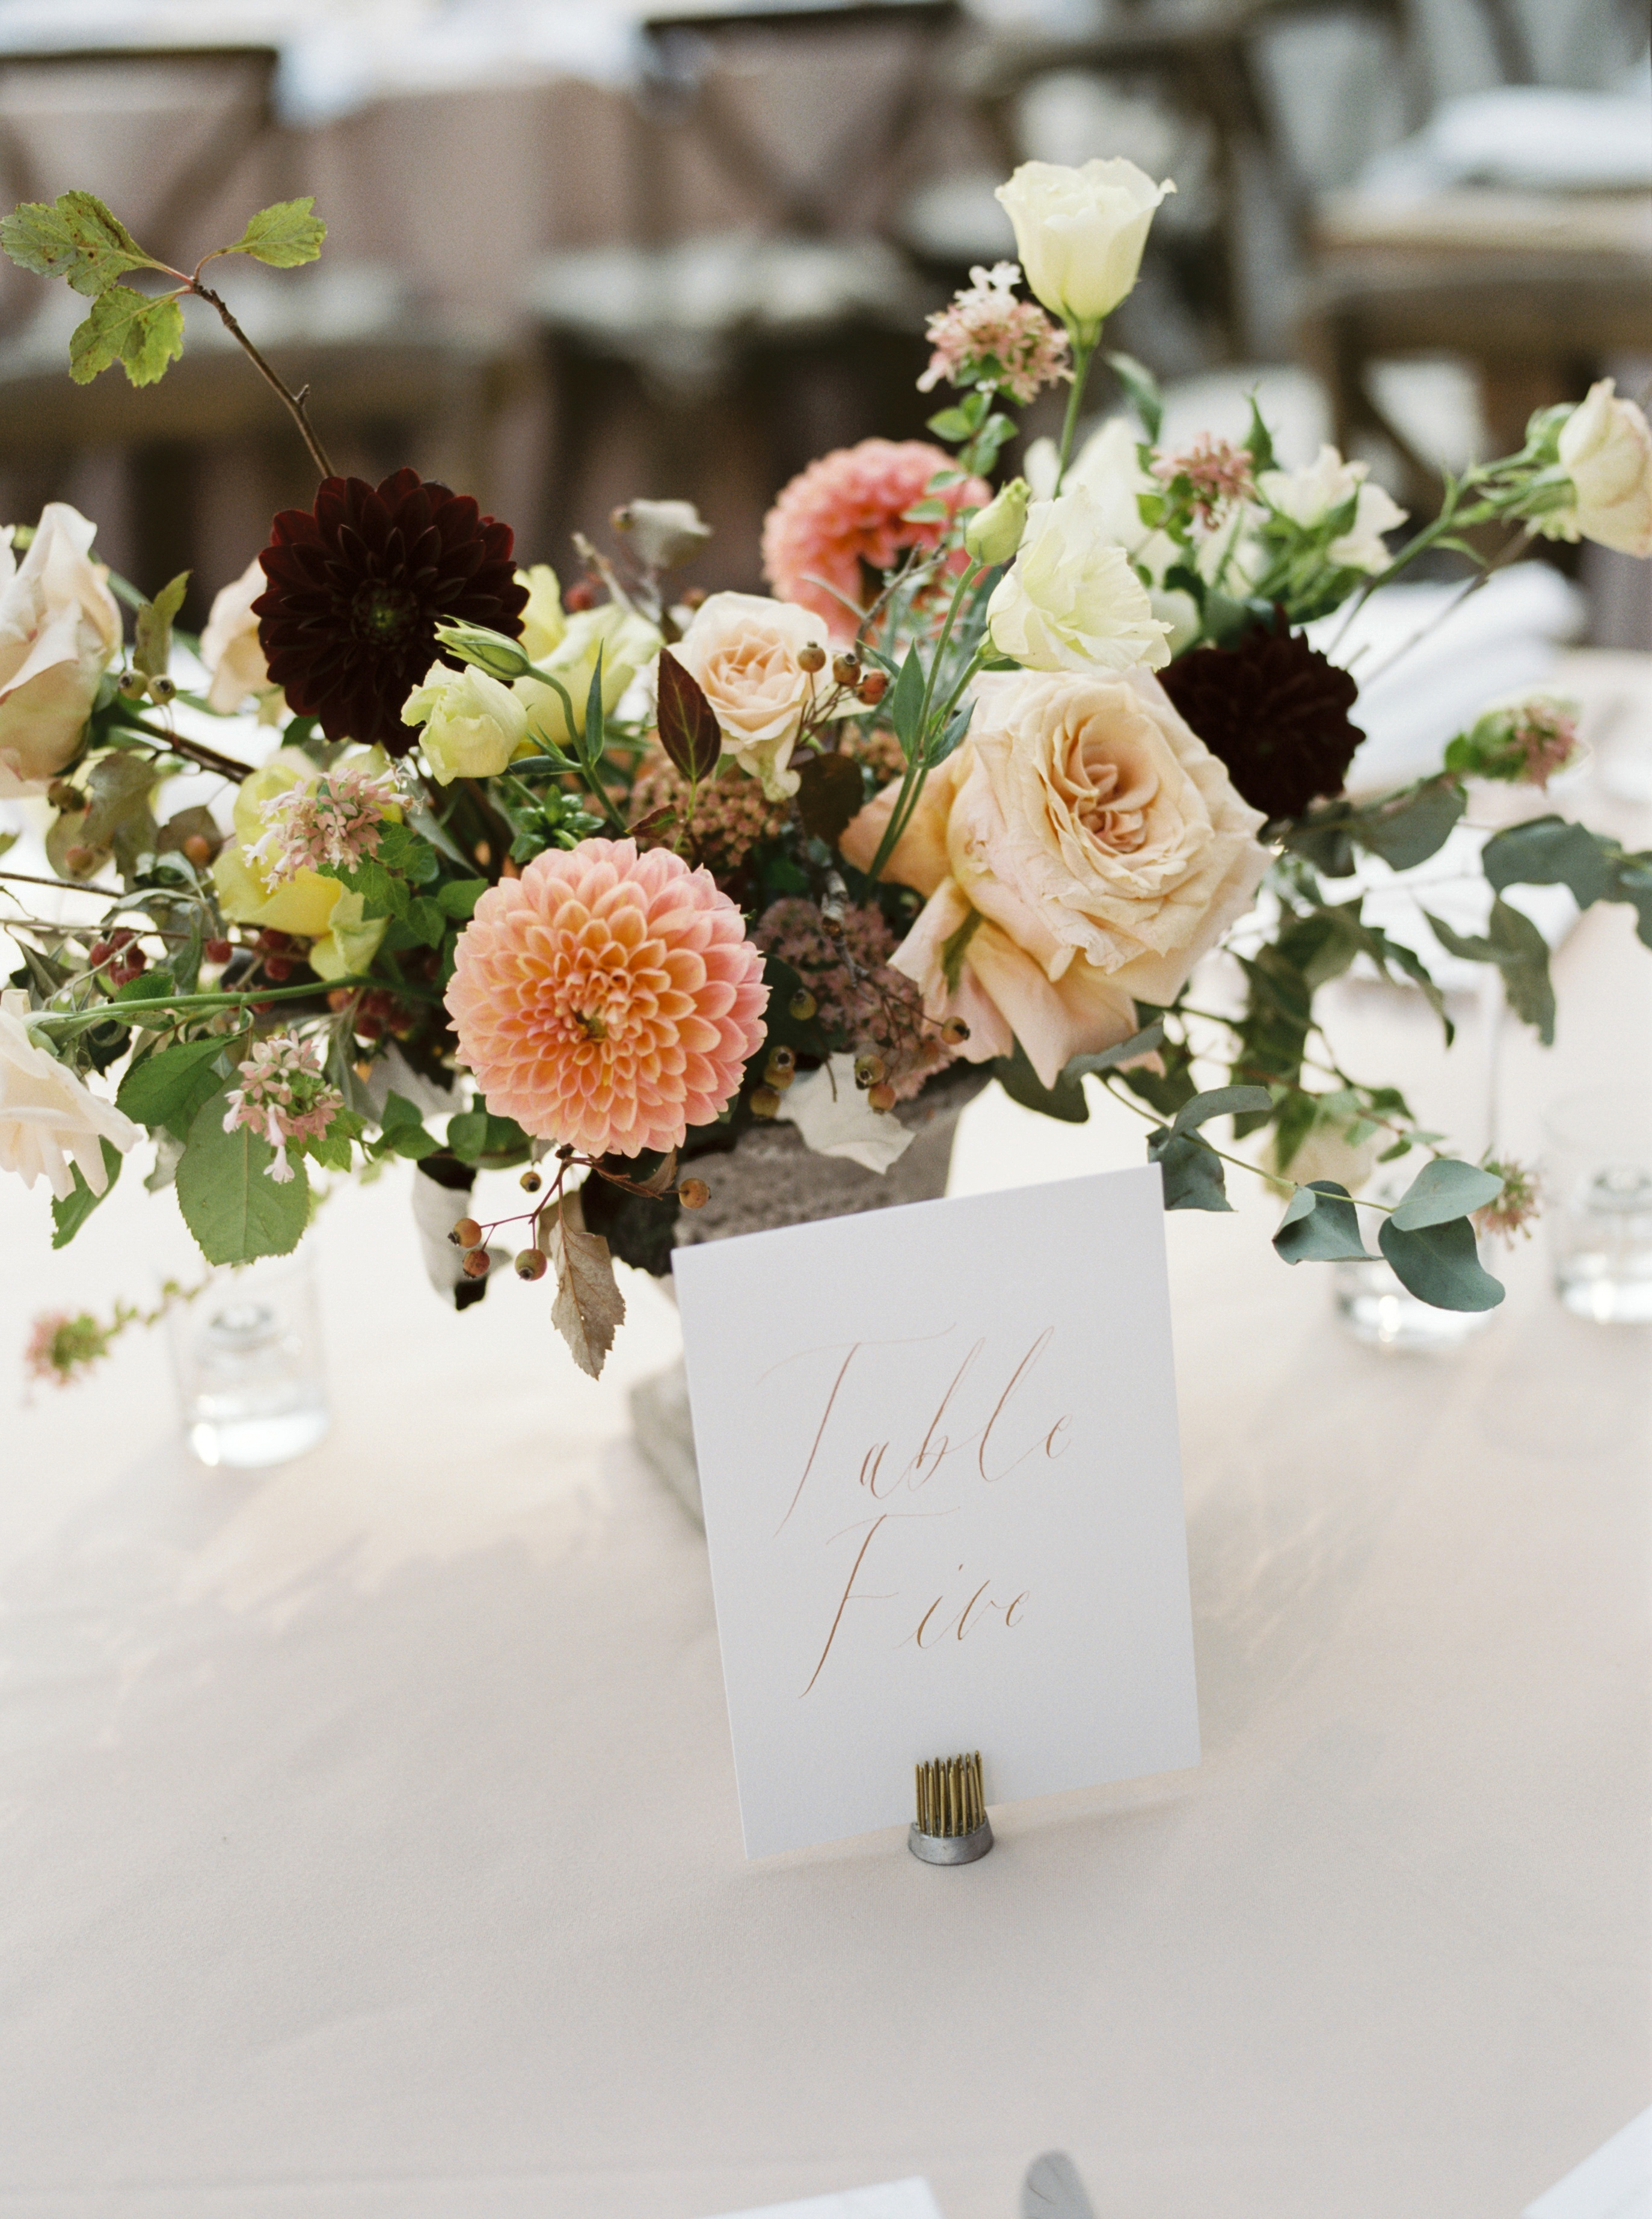 amanda william wedding tennessee centerpiece table number